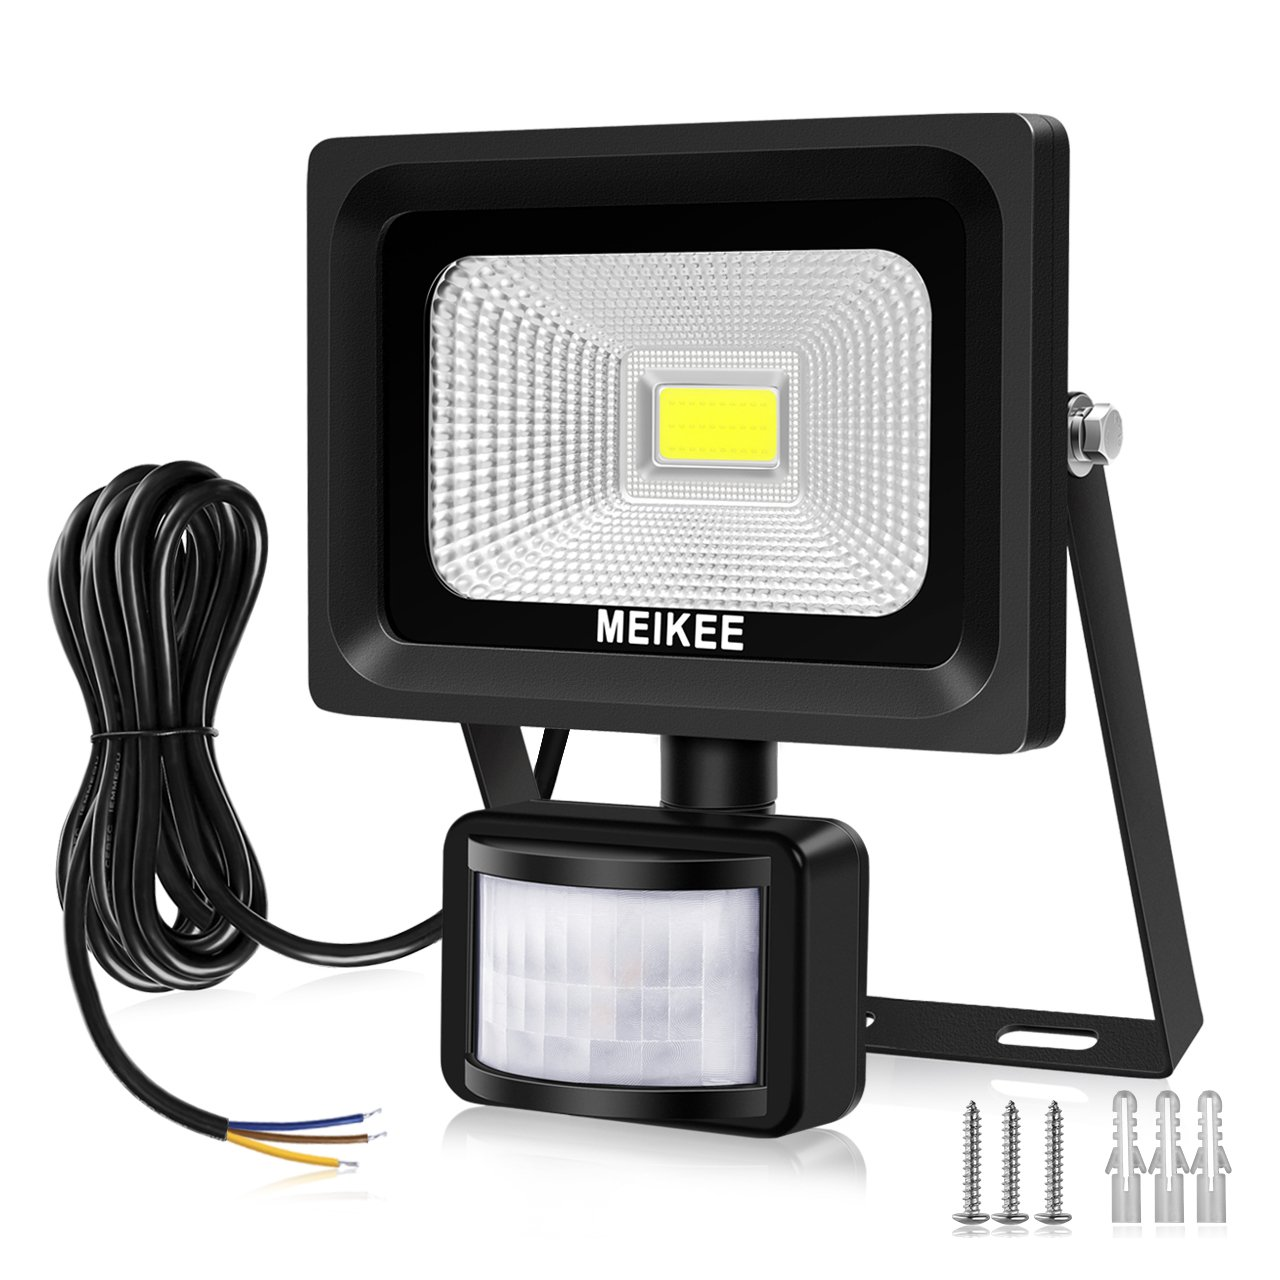 MEIKEE Security Lights with Motion Sensor, 10w Led Sensor Outdoor light, IP66 Waterproof Security Lighting, High Output 1000lumen, Super Bright LED PIR Floodlight, Ideal for Garden, Car park, Hotel and Forecourt, Daylight White [Energy Class A++]